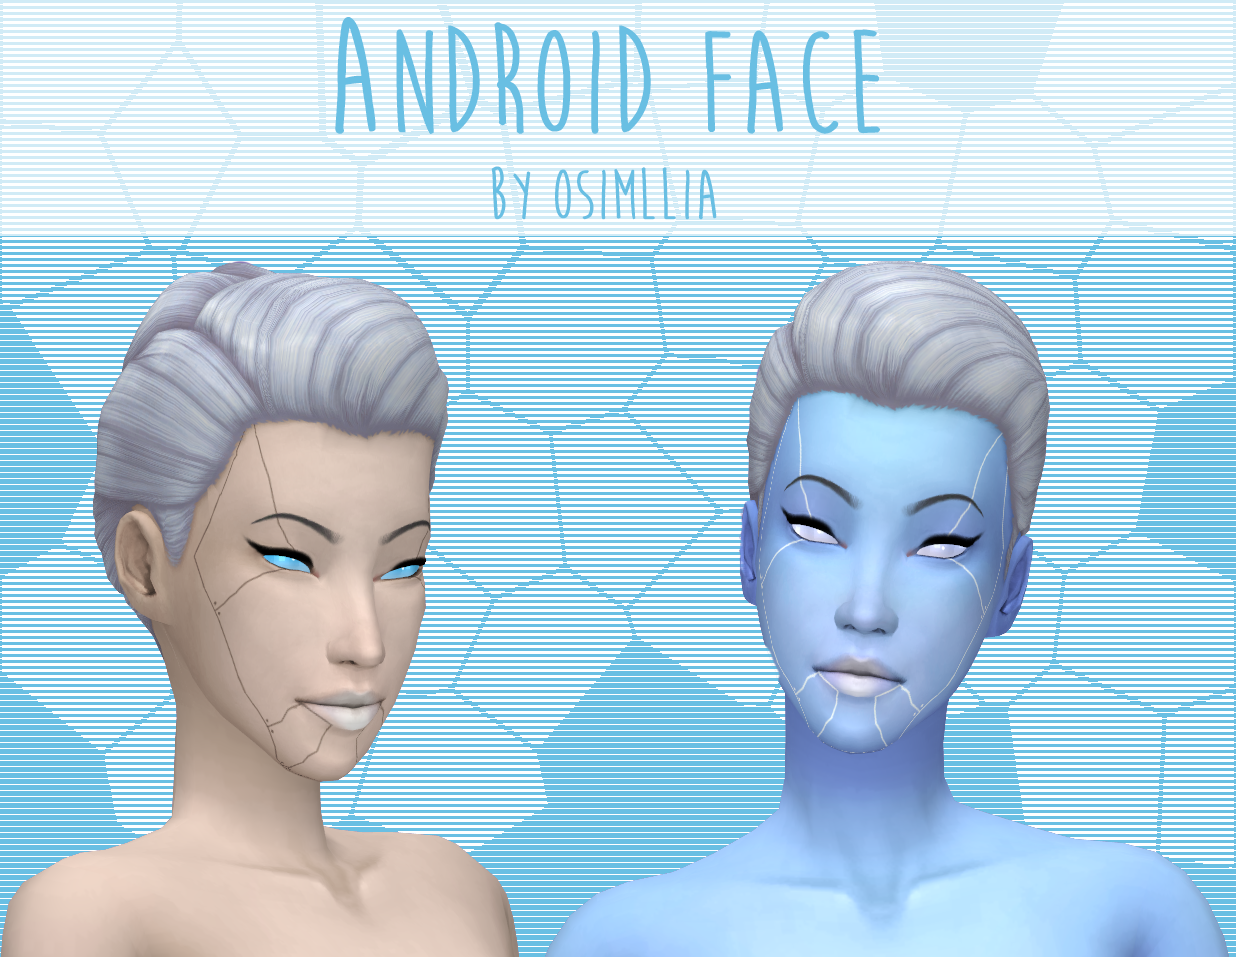 Lana Cc Finds Osimllia Here S A New Android Themed Face Tattoo Sims 4 Tattoos Tumblr Sims 4 Sims 4 Posting the best of the best sims 4 custom content! pinterest